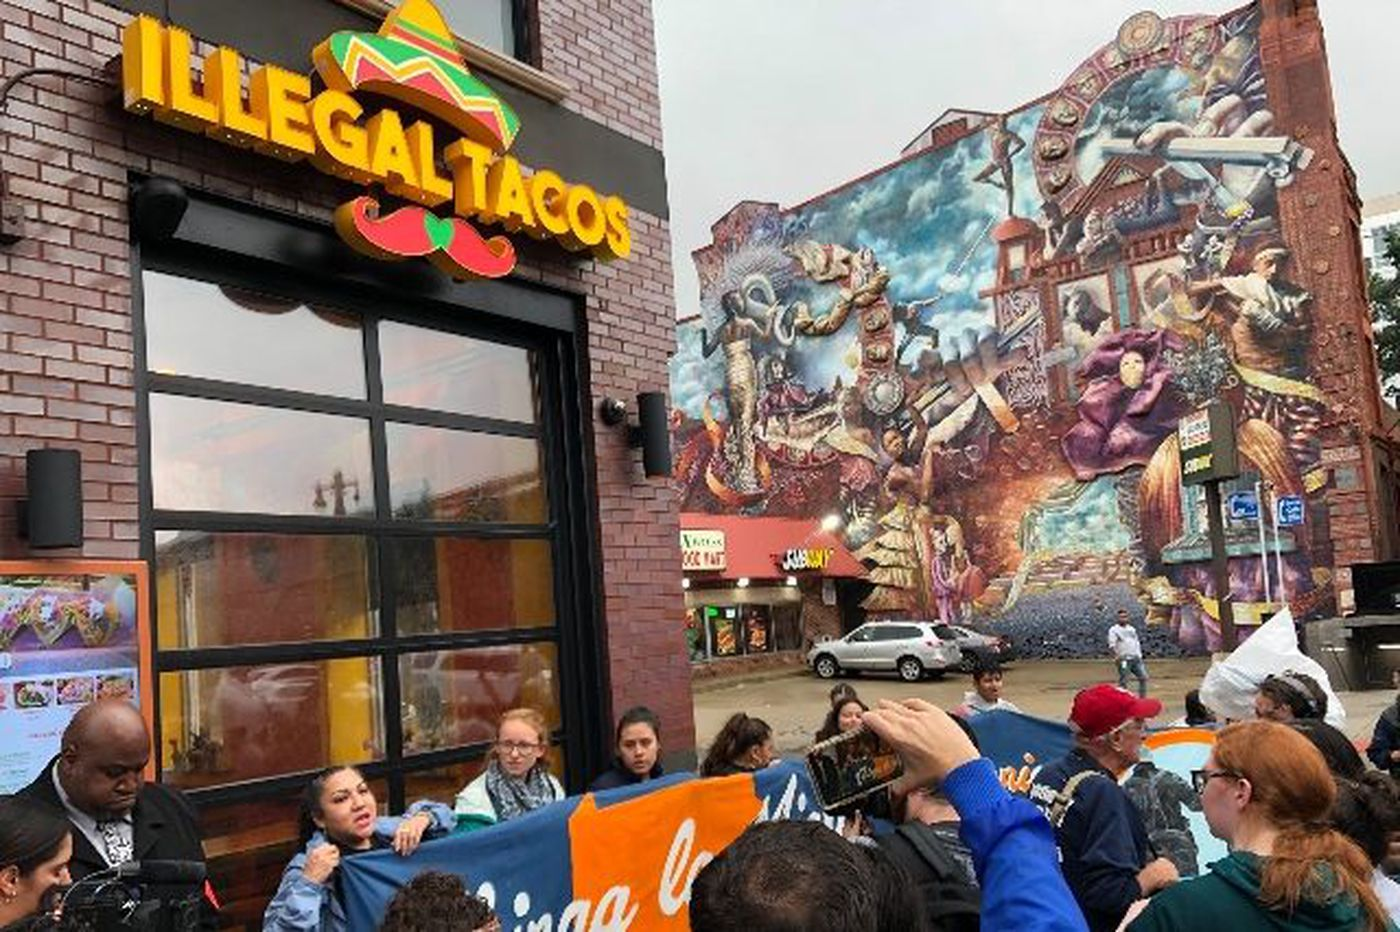 Philly's Illegal Tacos restaurant gets stuffed — and not with cheese and lettuce